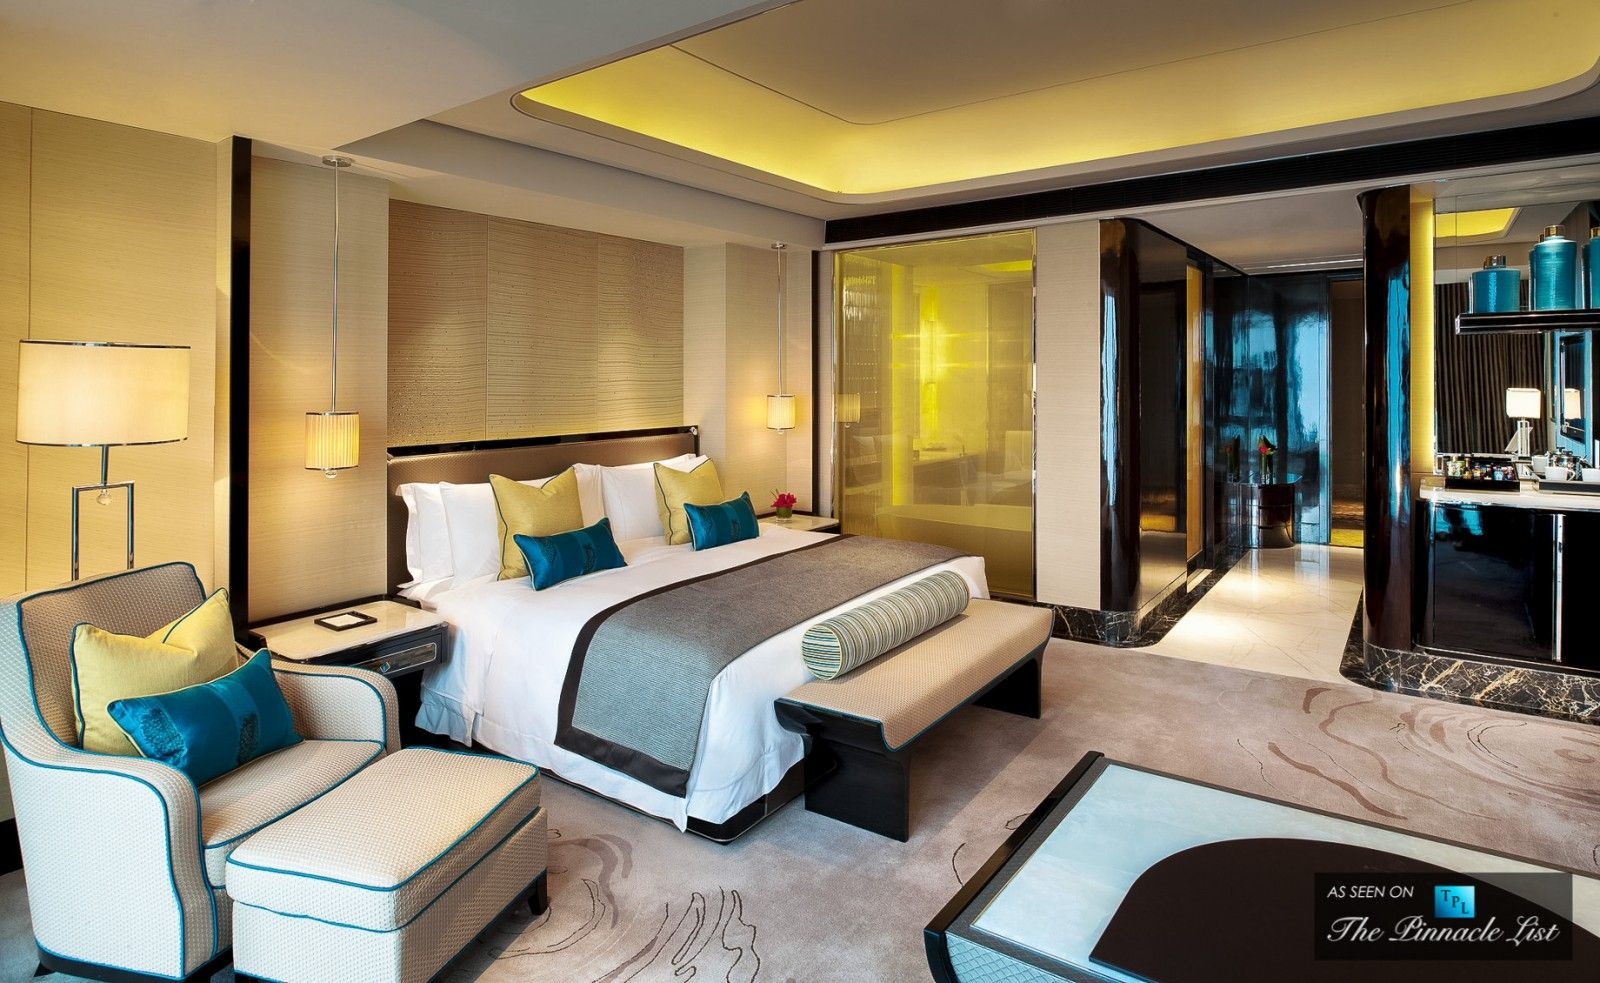 Comfort abounds in this hotel suite st regis luxury for Luxury hotel bedroom interior design